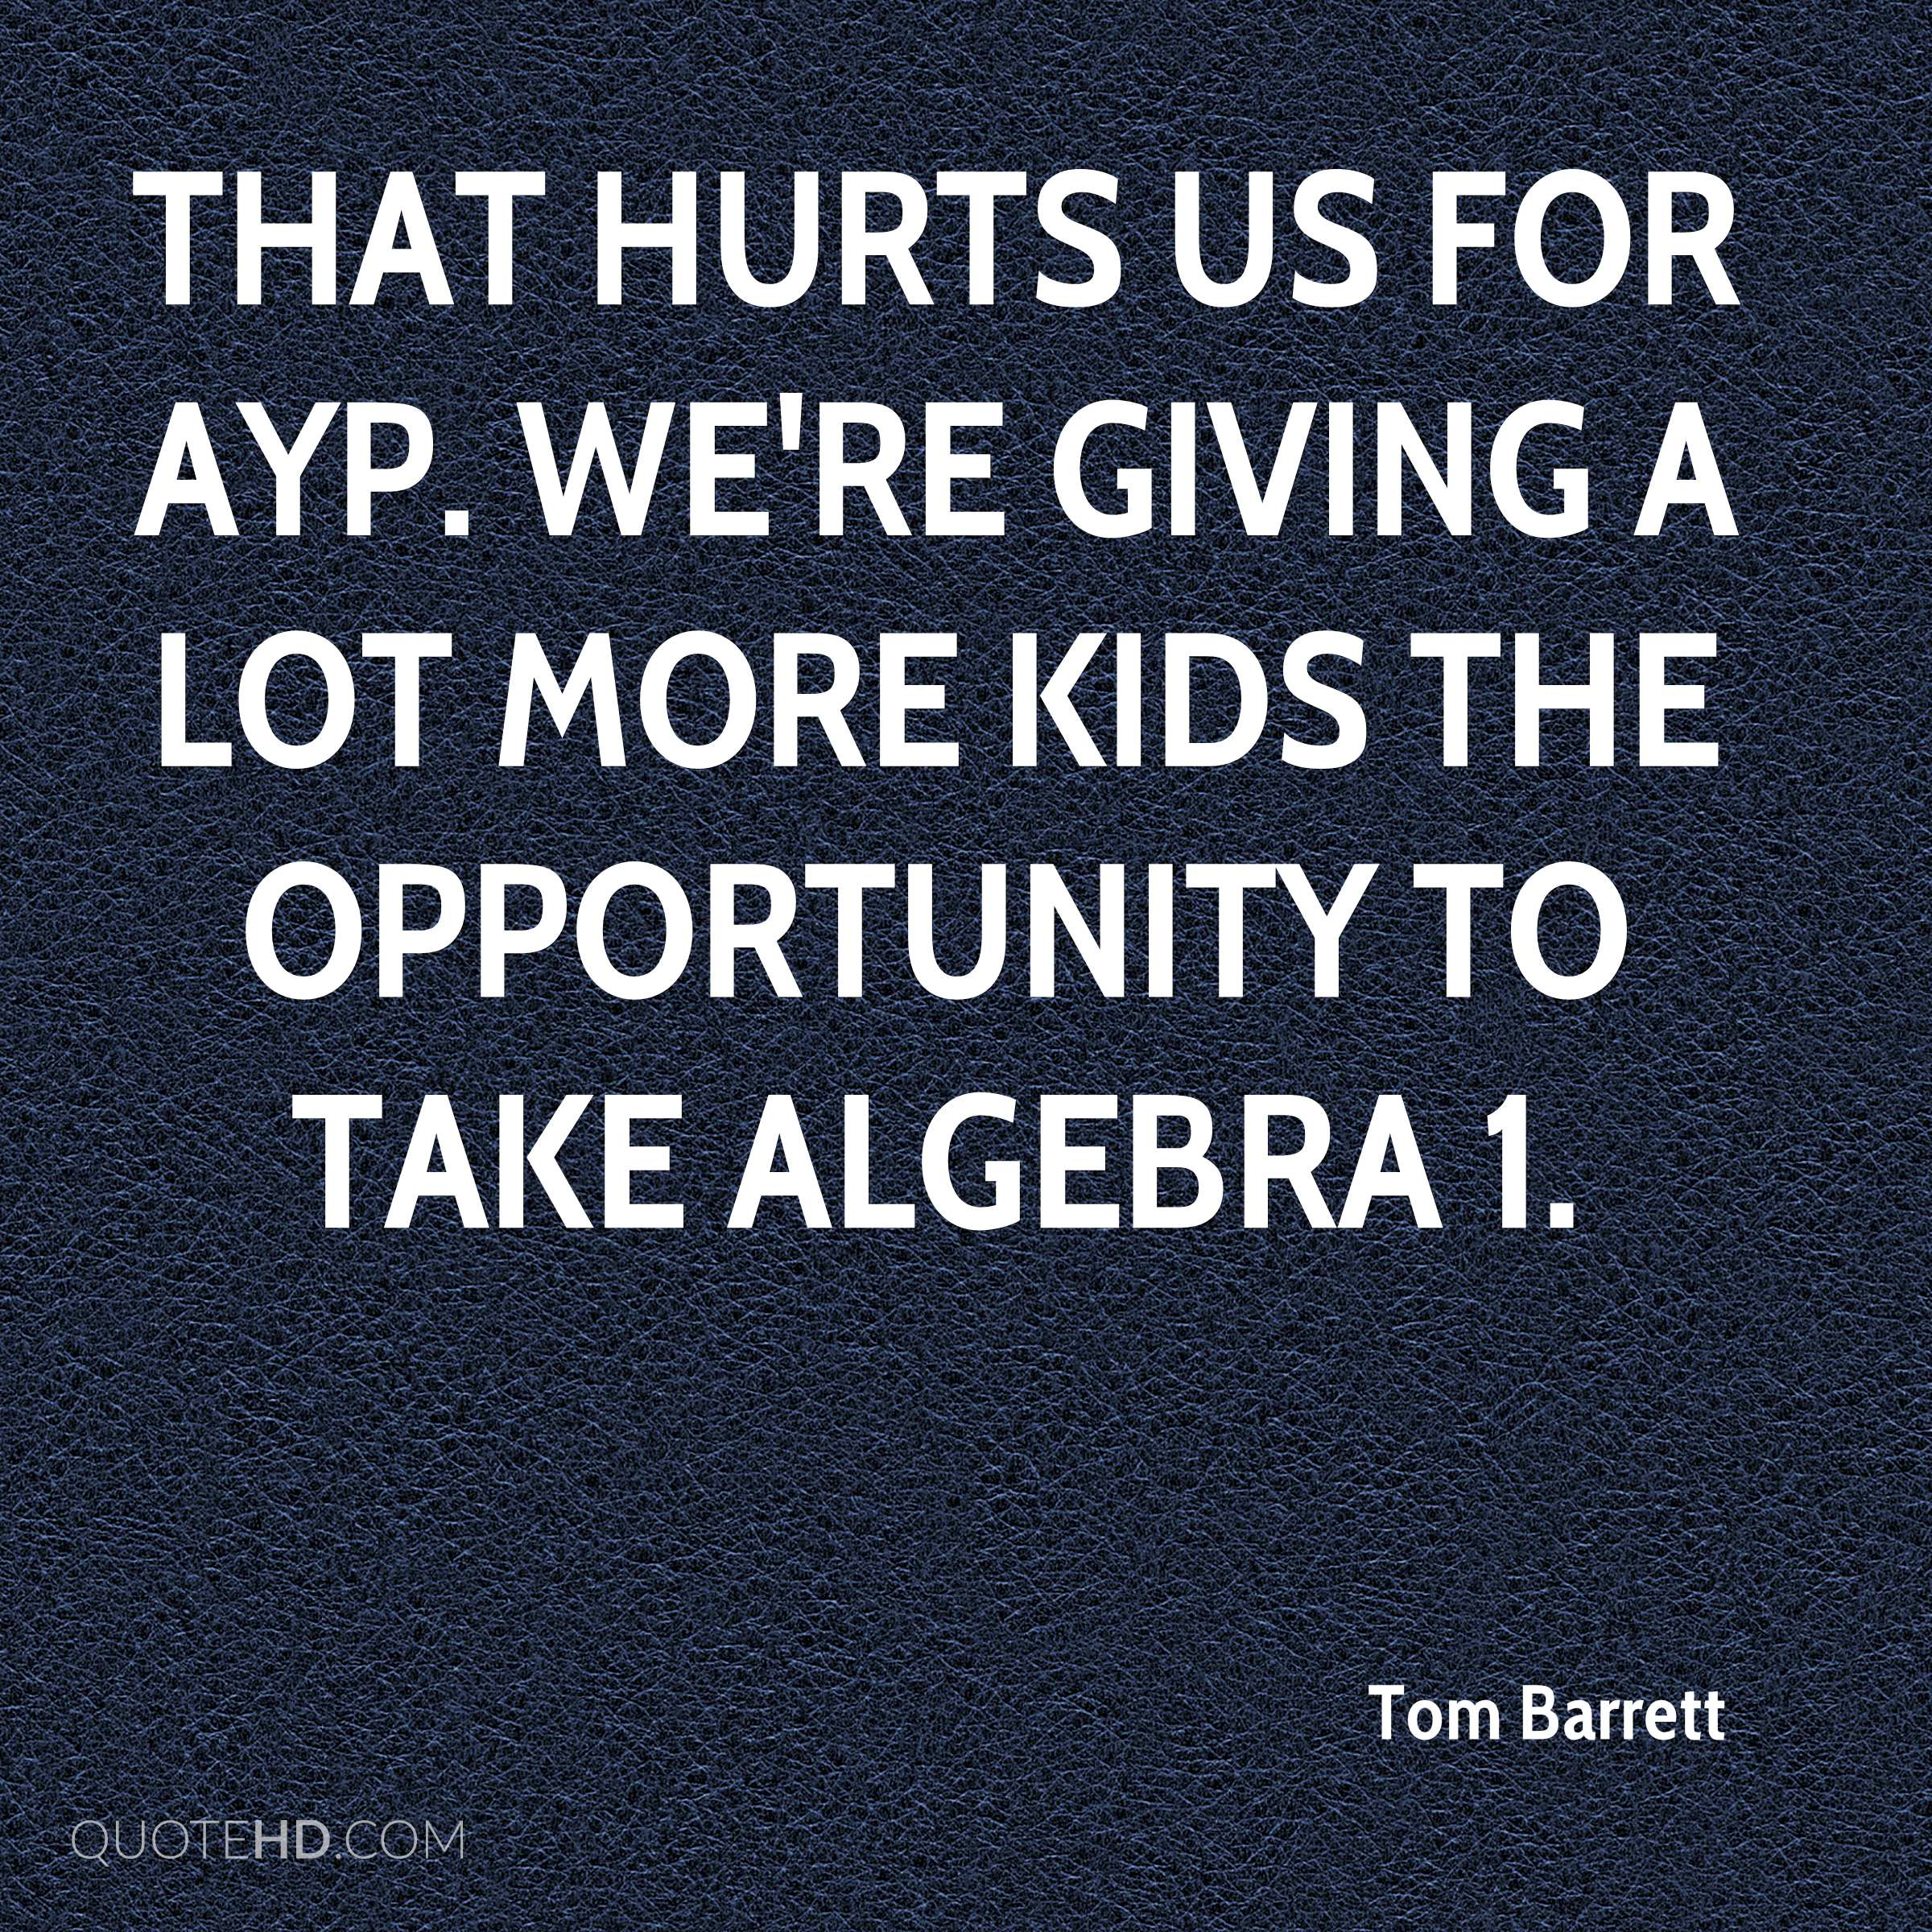 That hurts us for AYP. We're giving a lot more kids the opportunity to take Algebra 1.